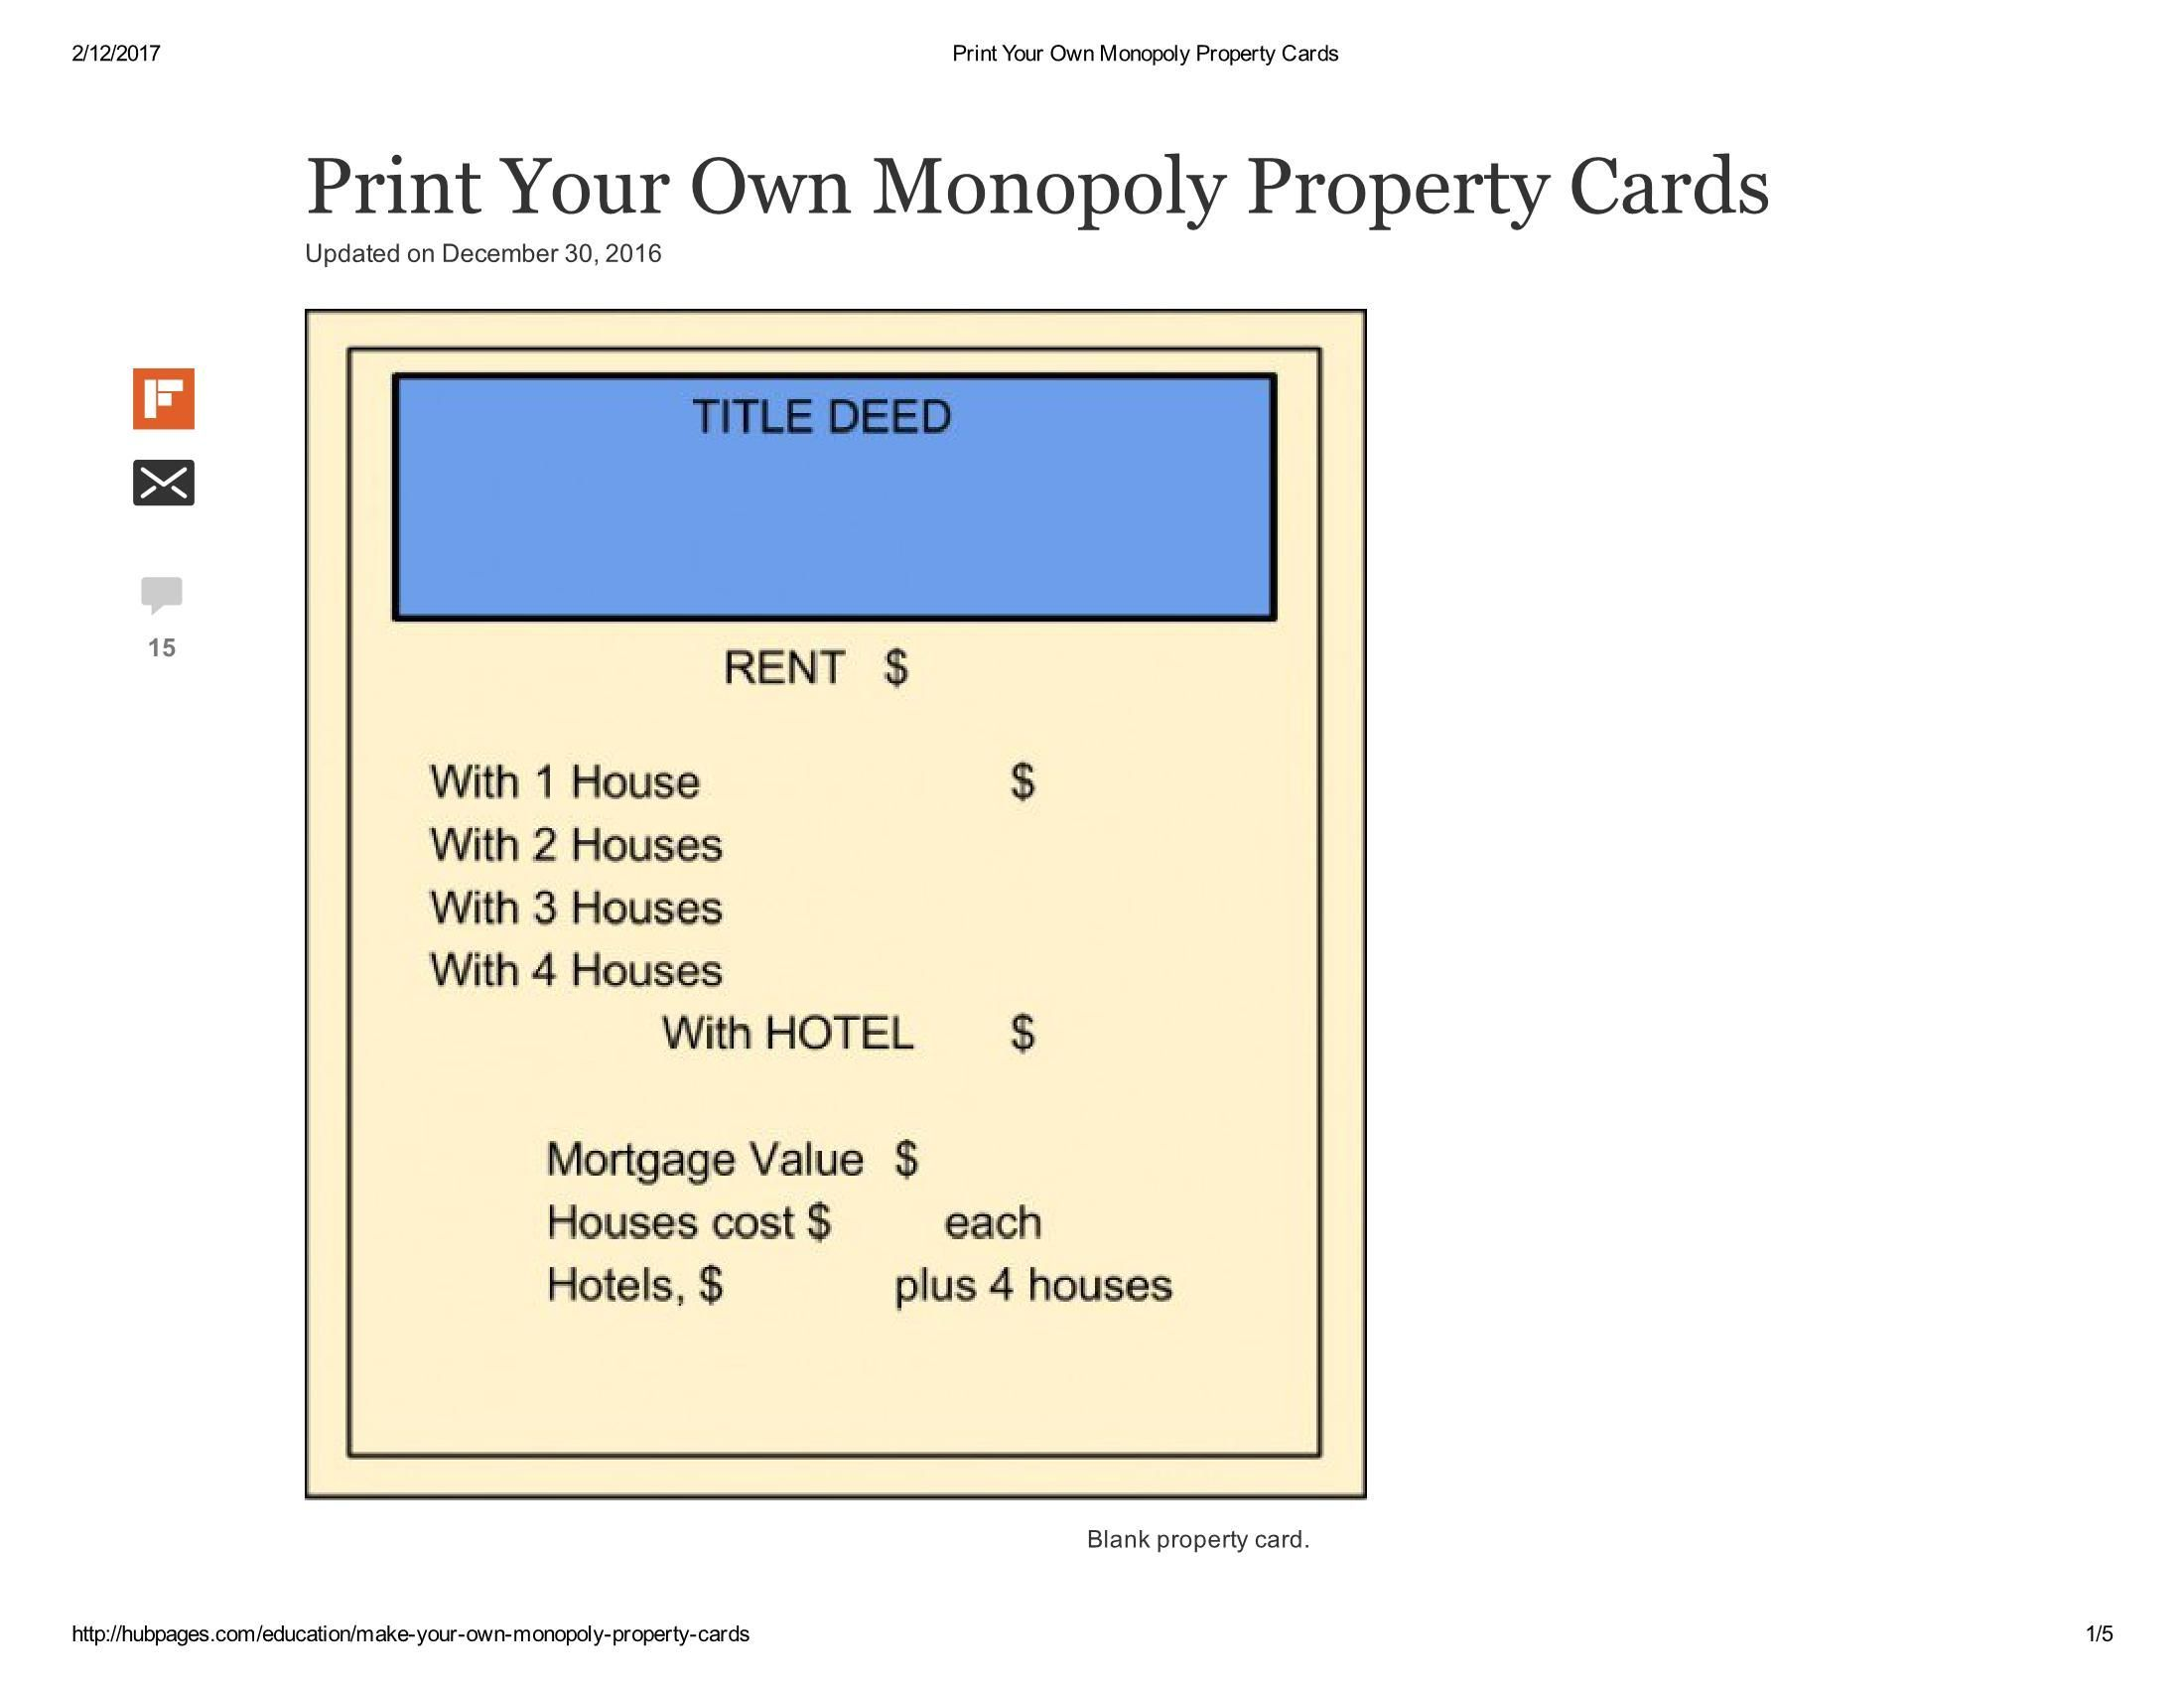 Print Your Own Monopoly Property Cards Document With Monopoly Property Card Template Cumed Org Monopoly Cards Card Template Card Templates Printable